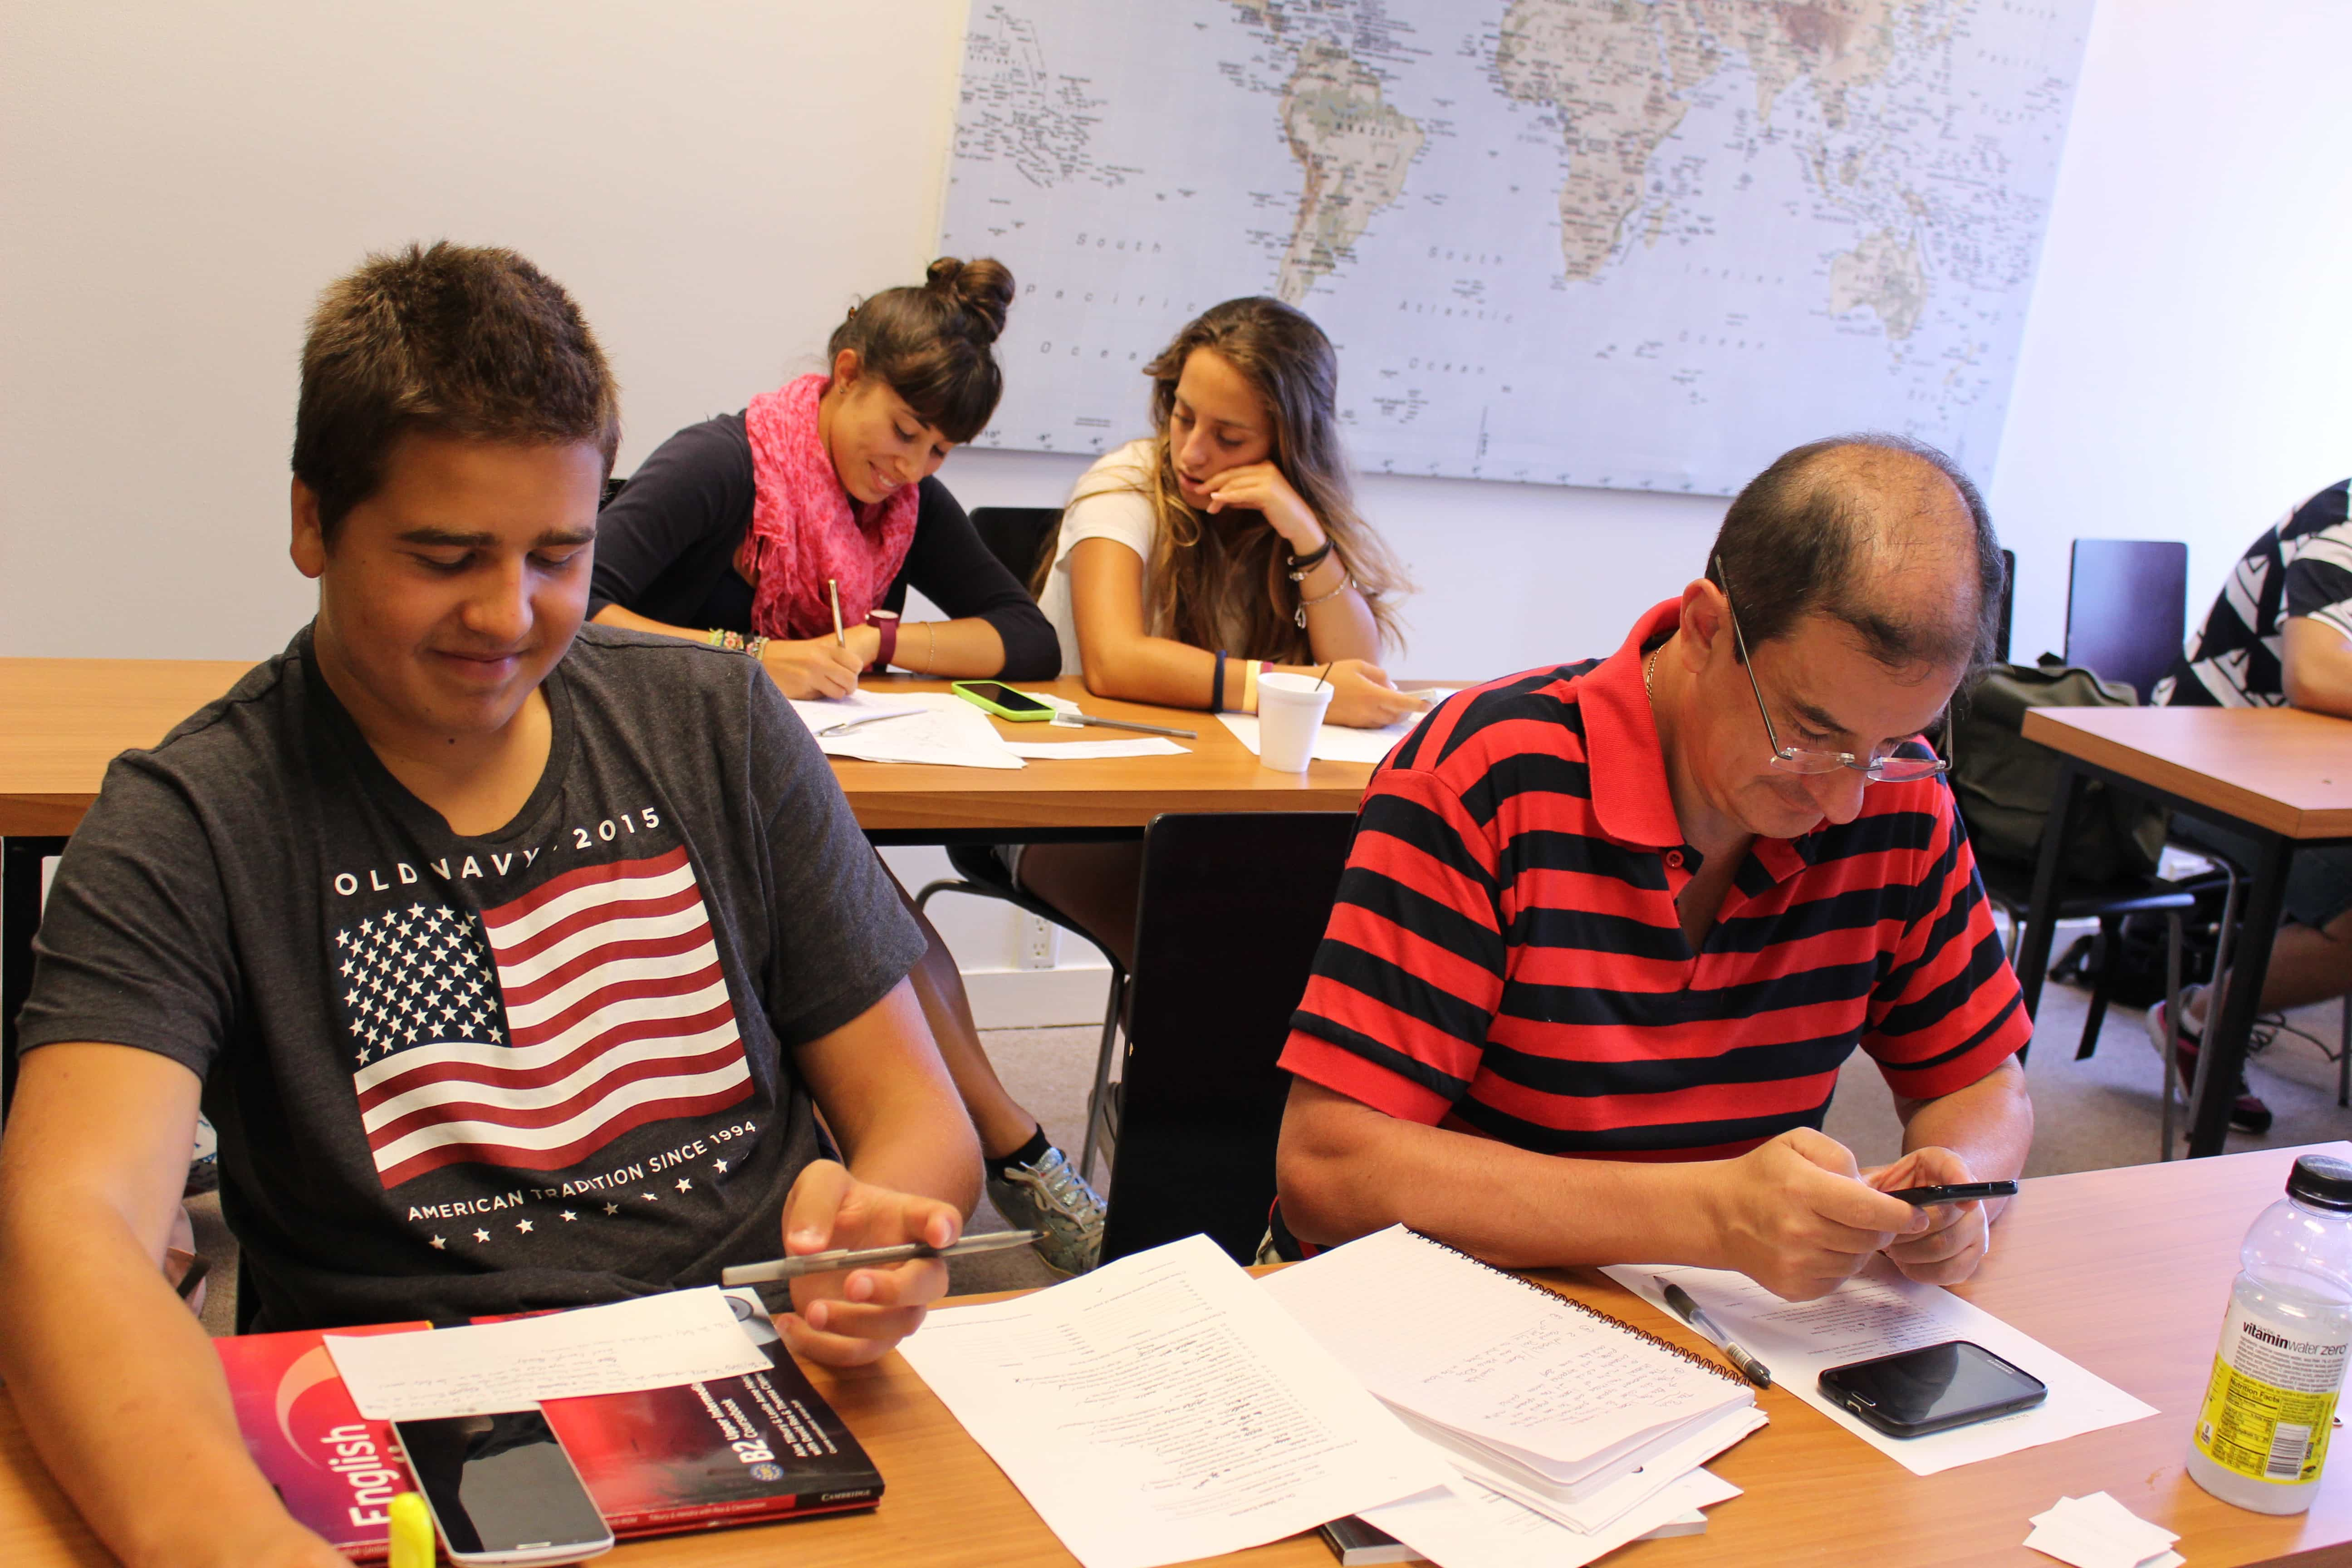 Learn common English expressions in an English school in Miami